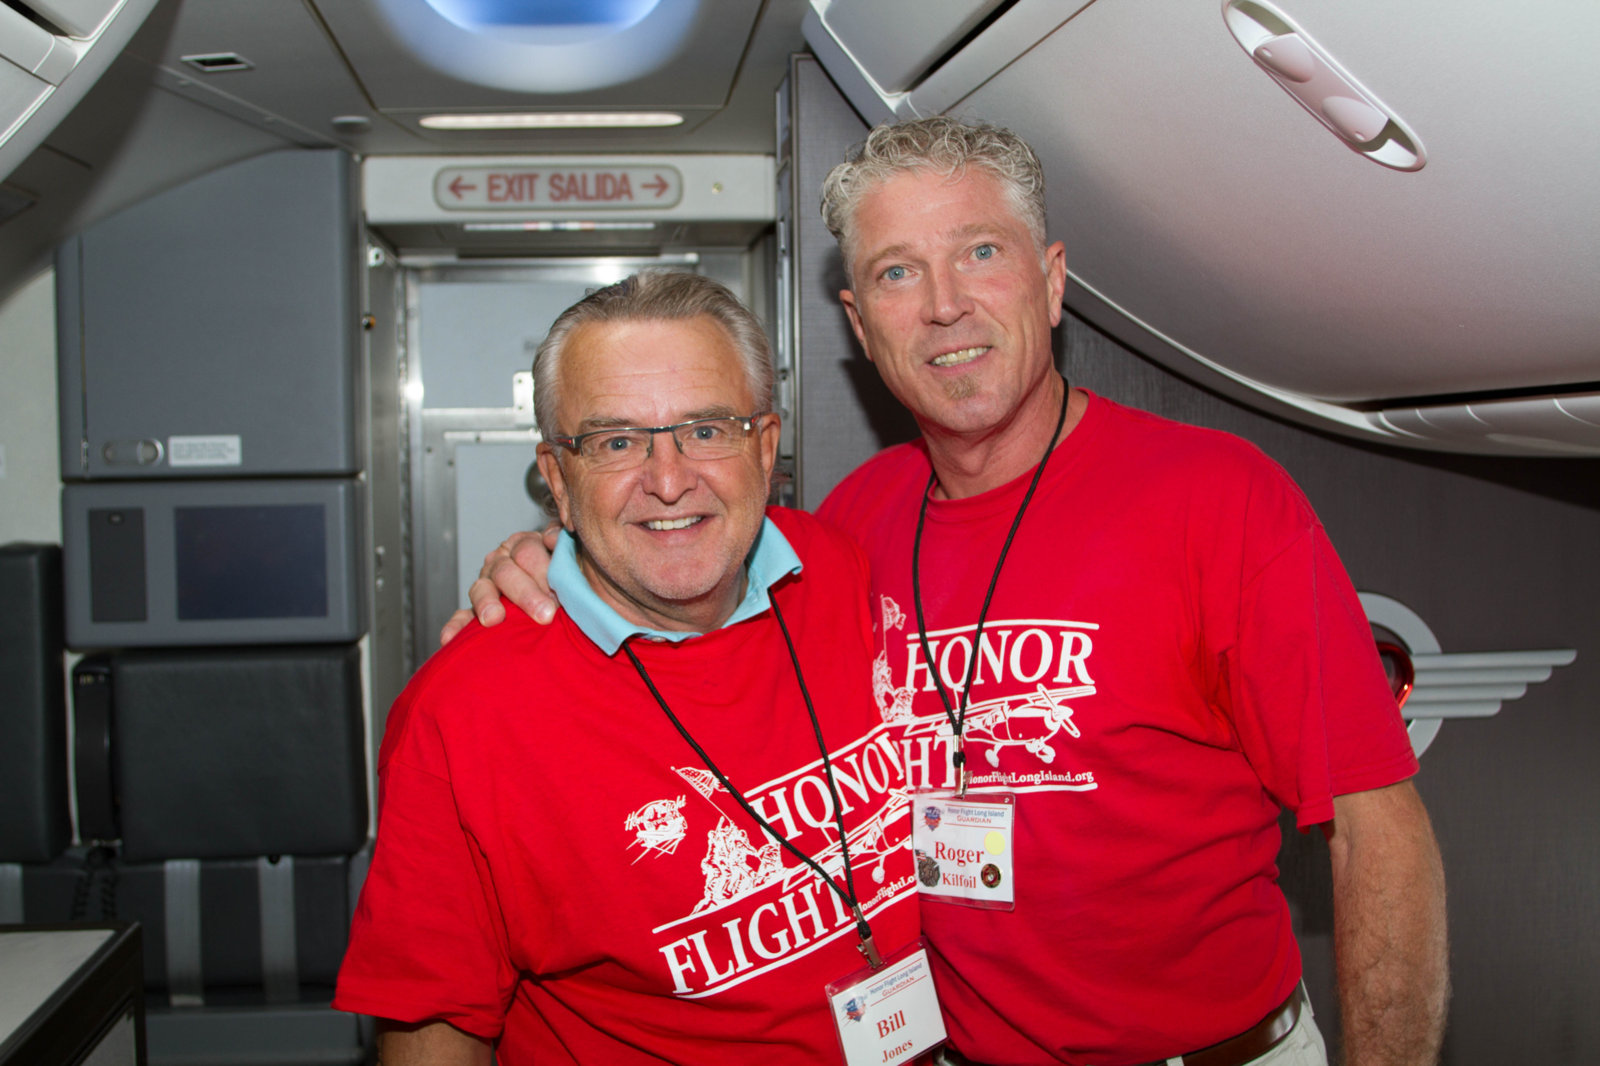 honor_flight-0131_55a9341459d67_big-1